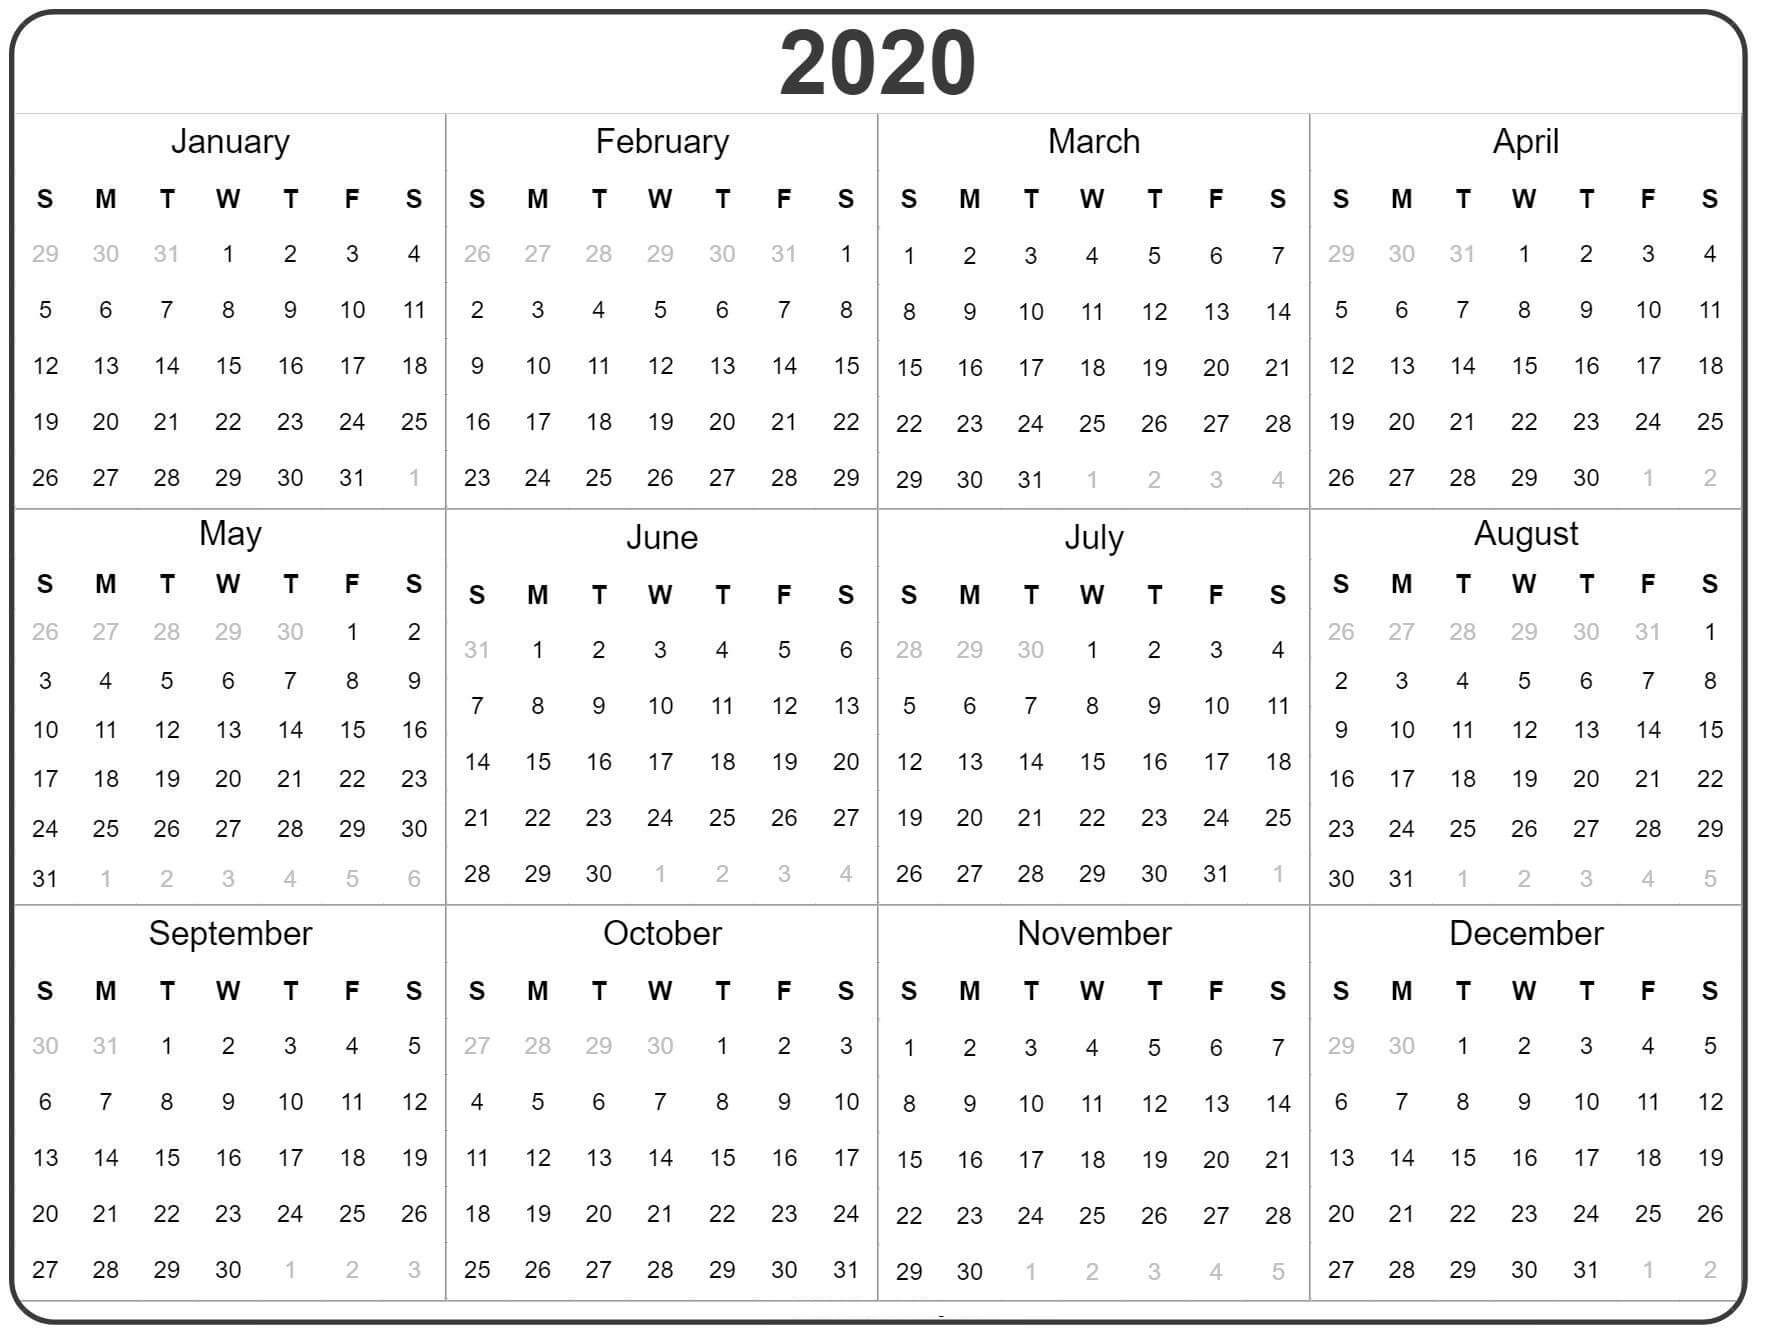 Free Yearly Calendar 2020 With Notes - 2019 Calendars For regarding Calendar At A Glance With Usa Holidays For 2020